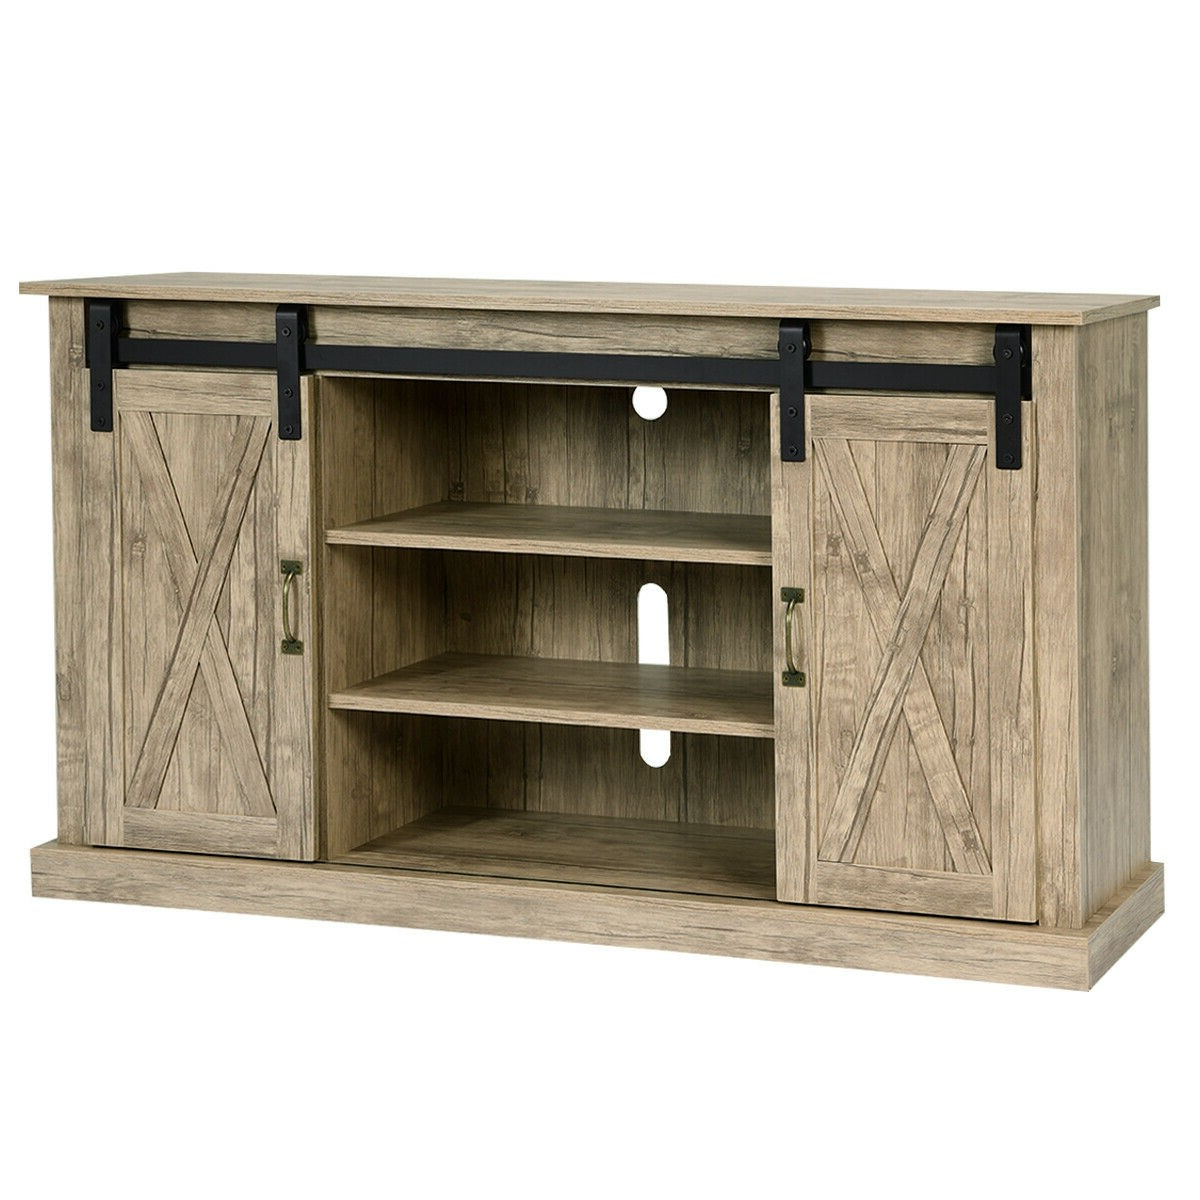 Modern Sliding Door Tv Stands With Current Modern Sliding Barn Door 54 Inch Tv Cabinet Stand, Tv (View 10 of 10)